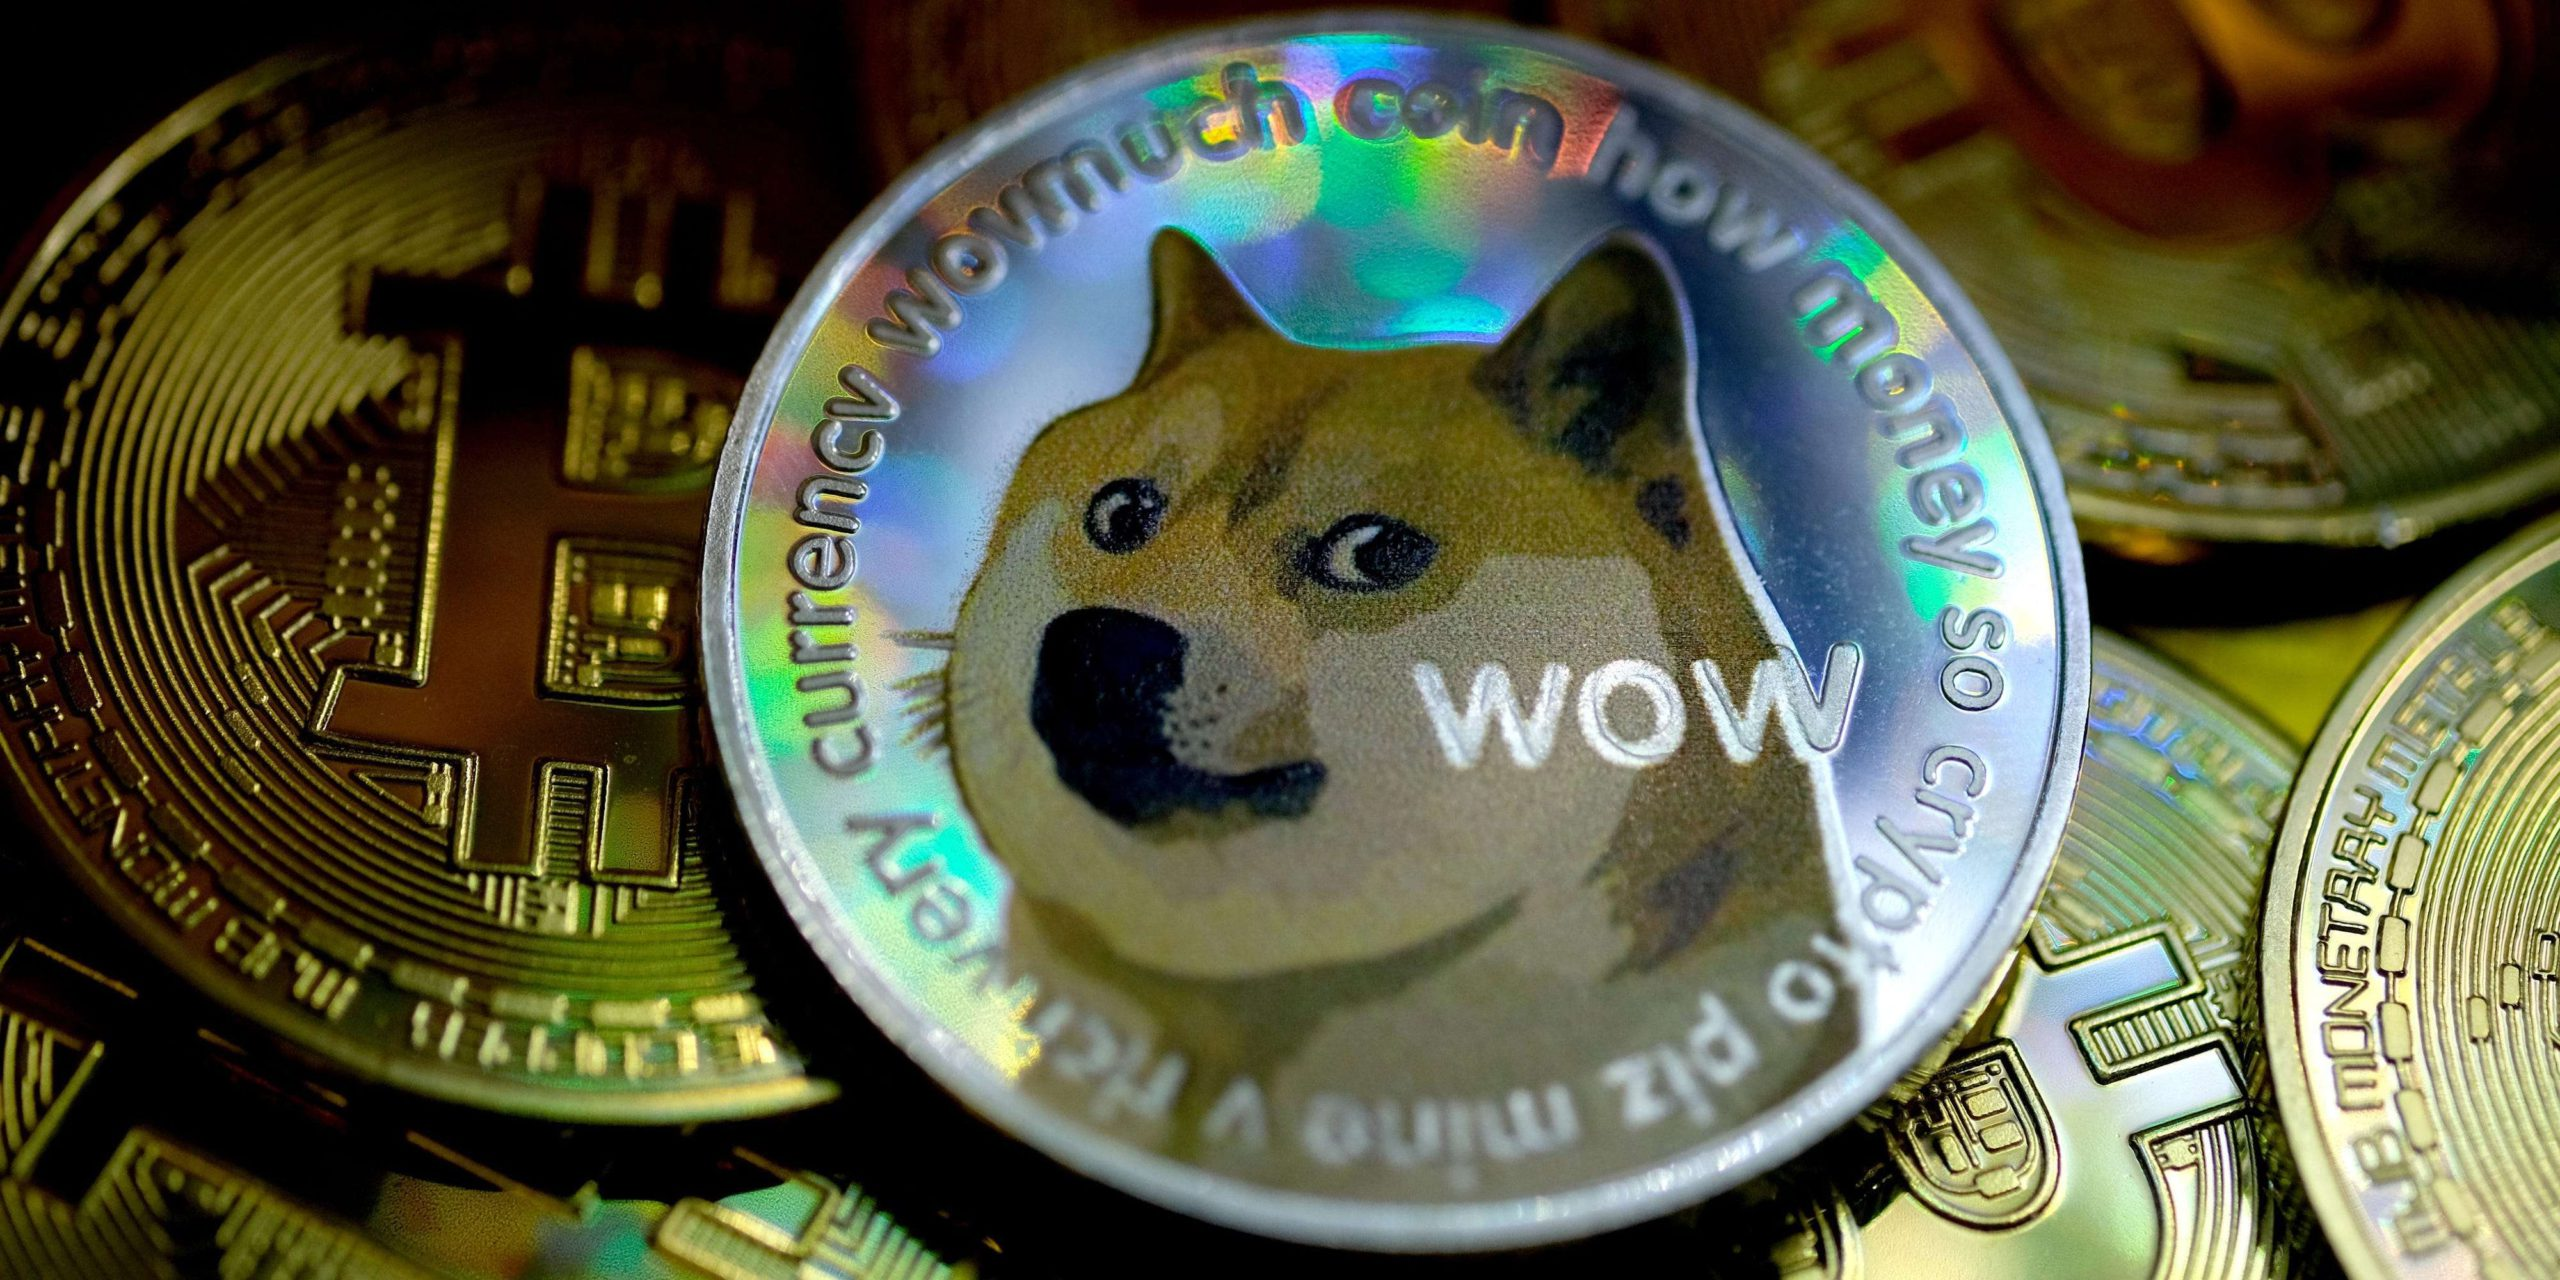 Dogecoin Price Going Up 25% After Elon Musk Tweet? Red Hot Crypto Hit $1 trillion?